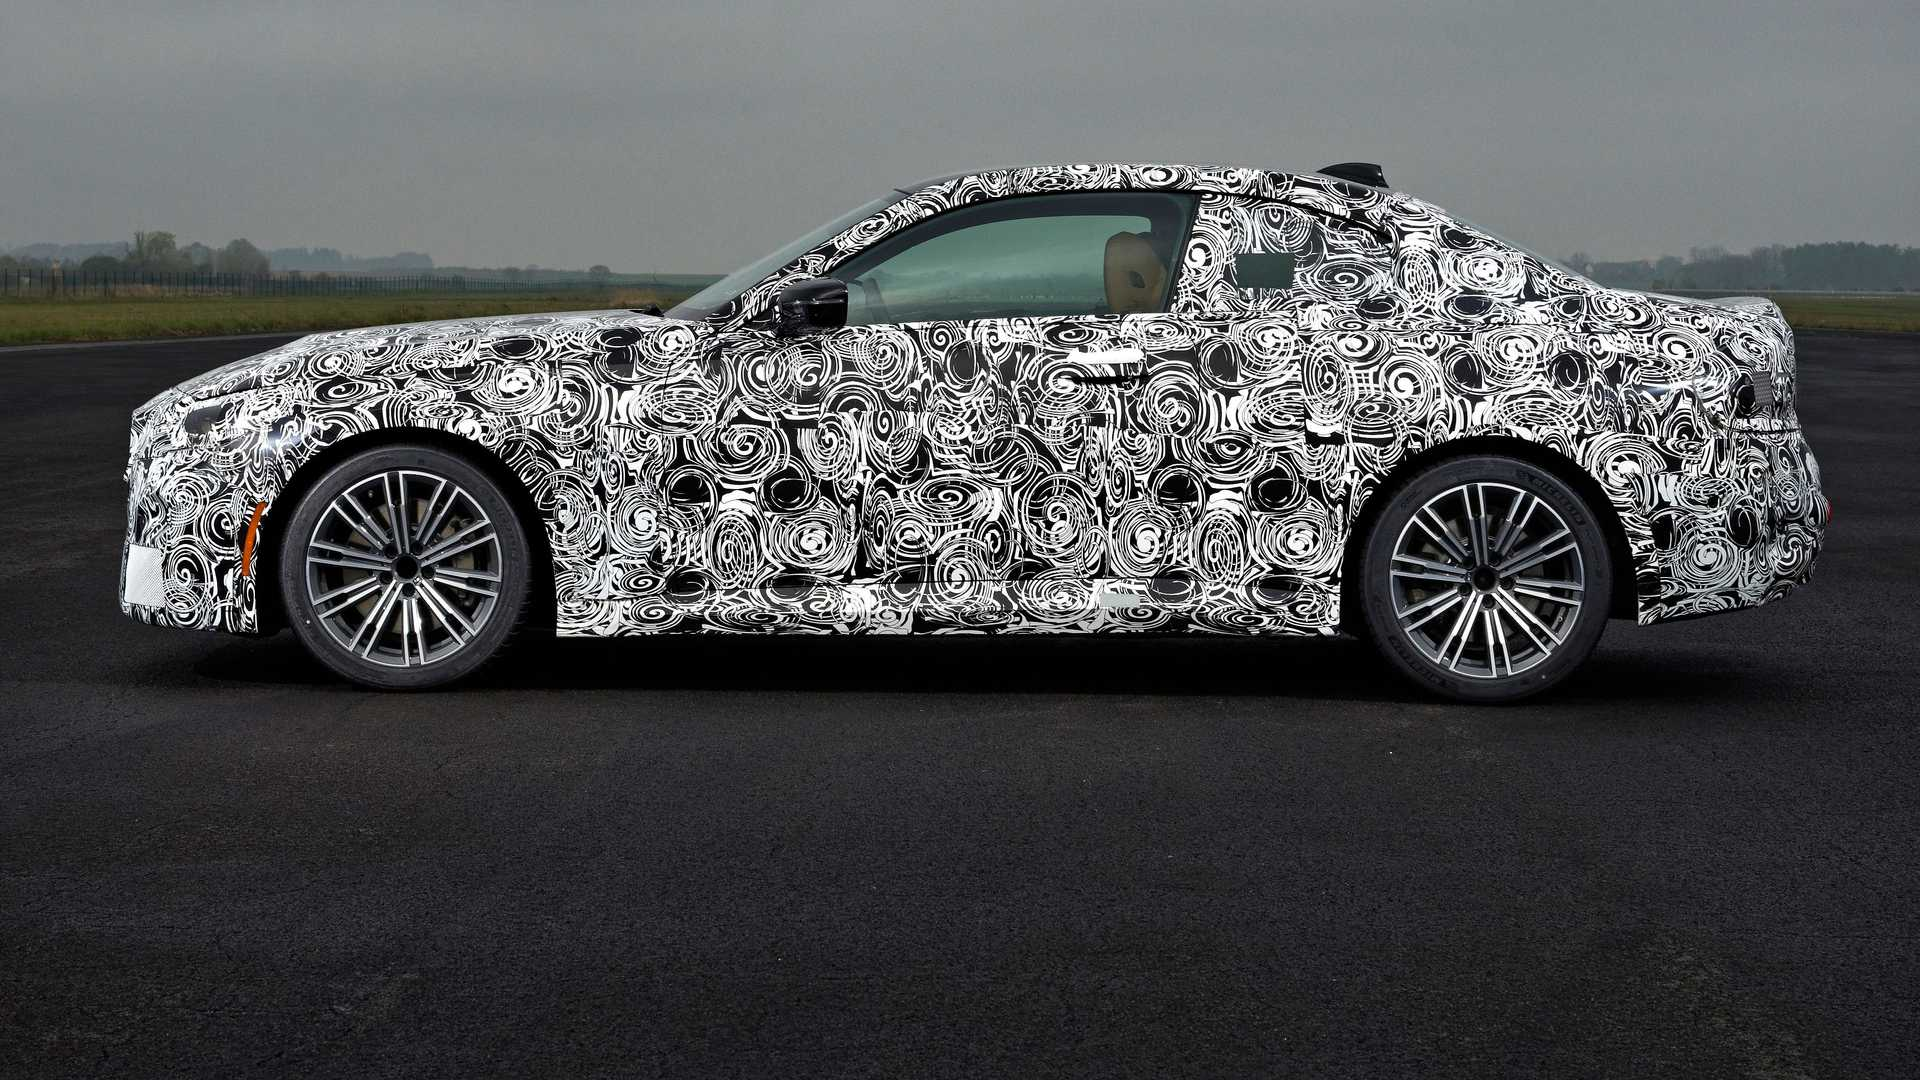 A Two Ready To Tango: The Upcoming Revised 2023 BMW 2-Series Will Be A Pocket Rocket With Huge Hot Rodding Potential